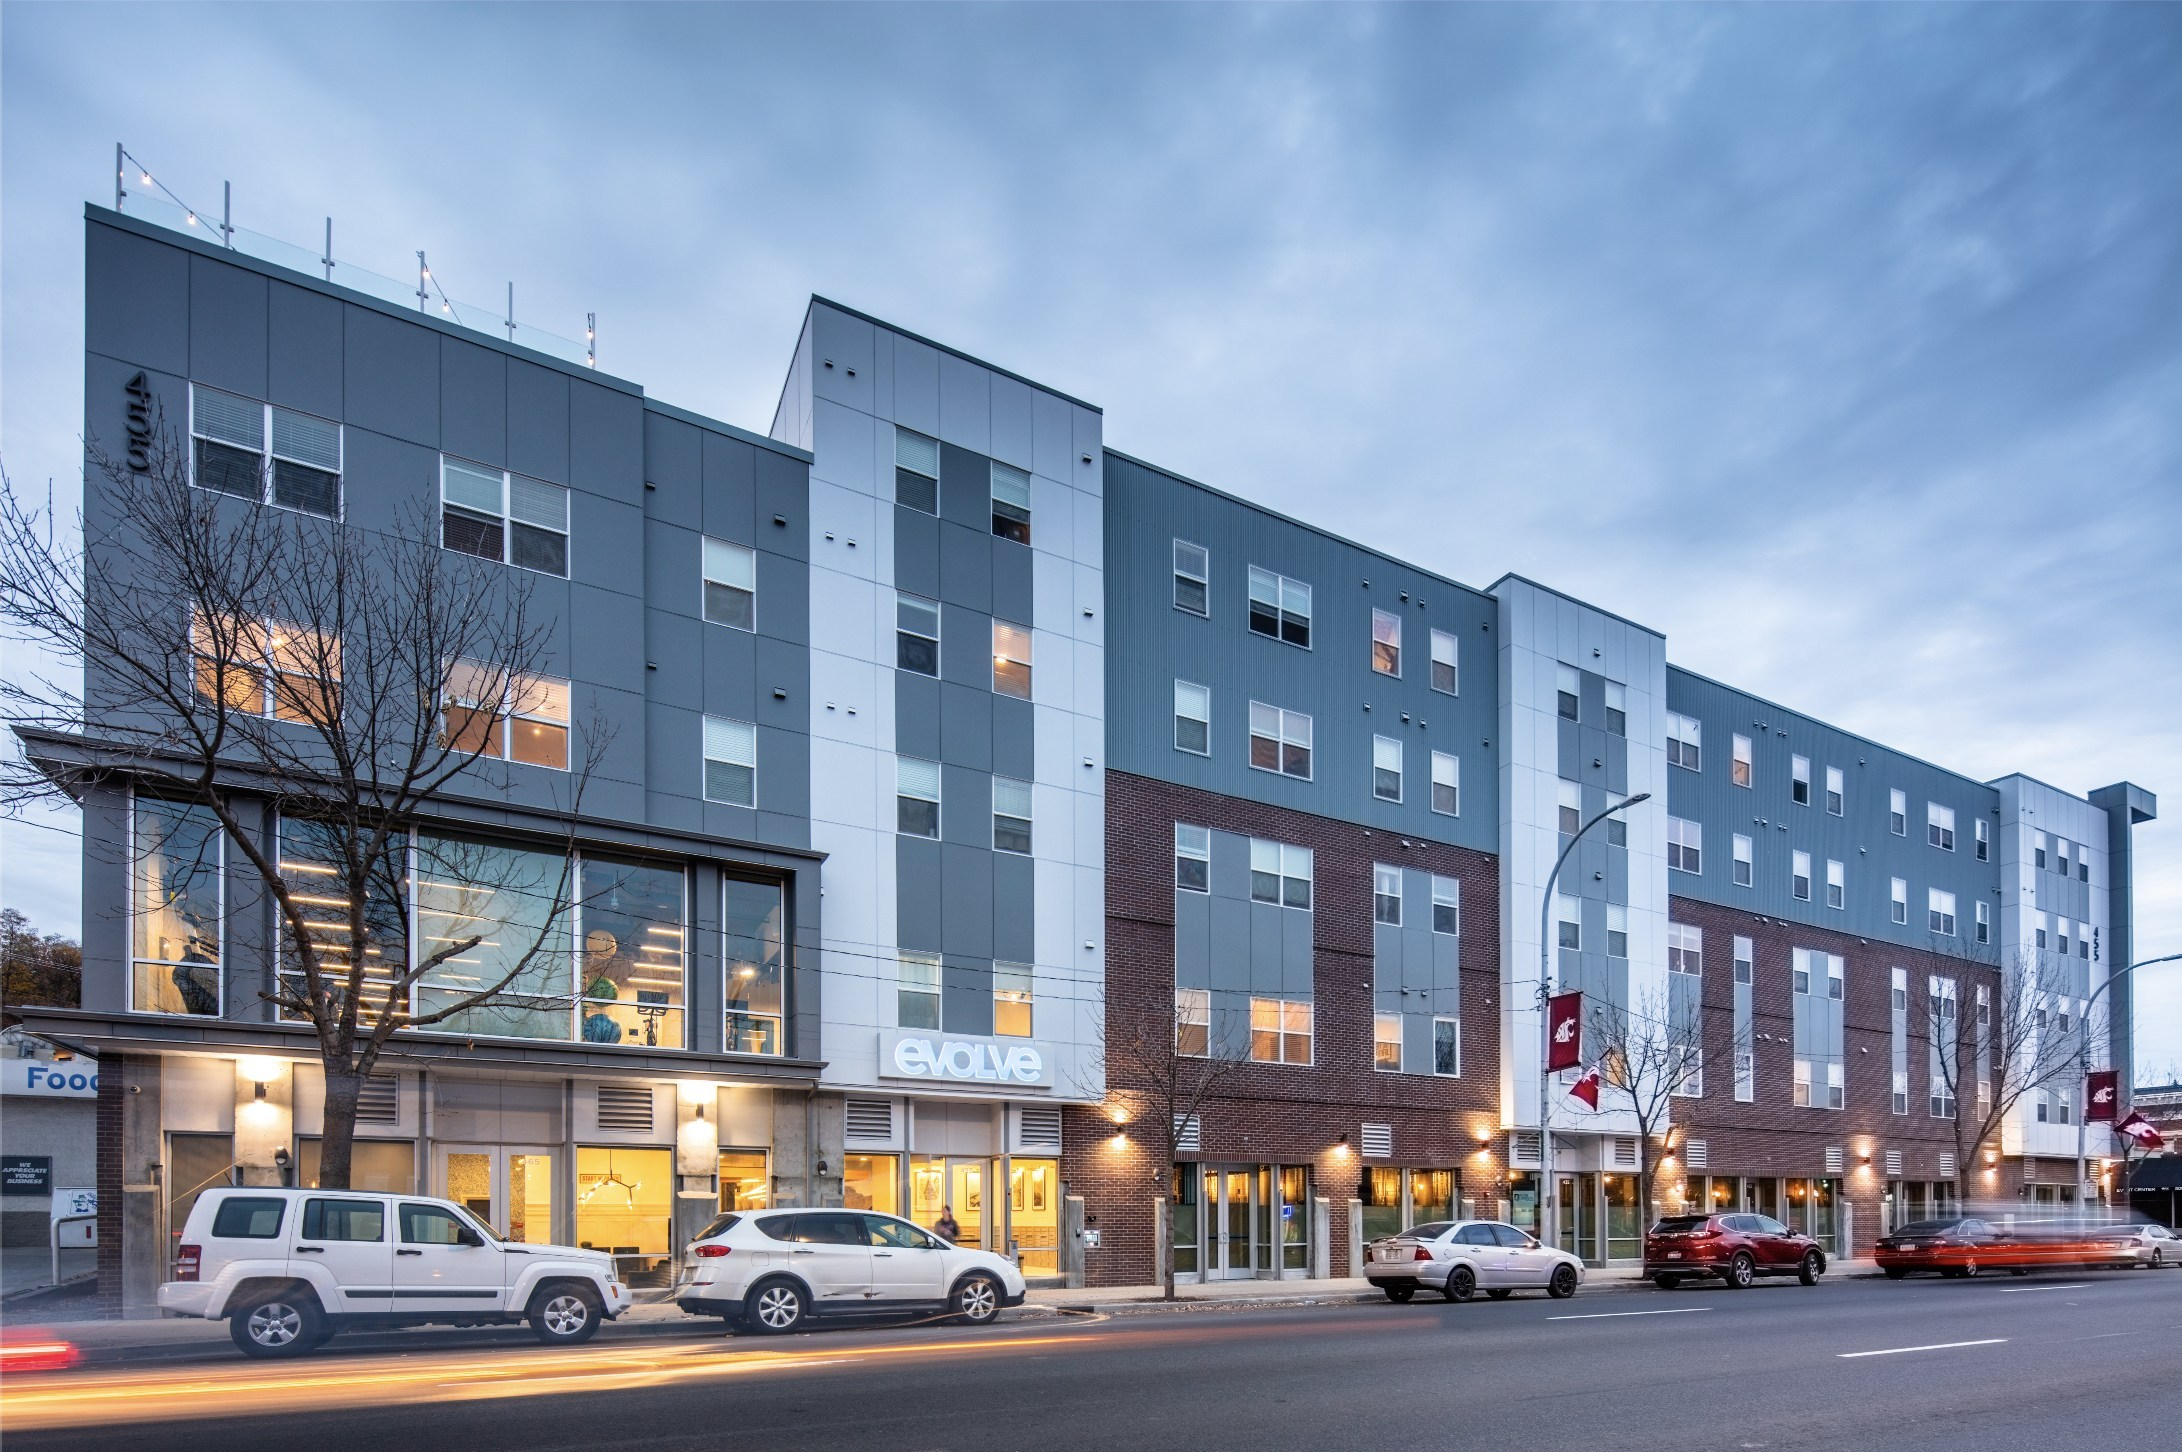 QuadReal Property Group Acquires Fifty-Percent Interest in CA Ventures to Become Joint Owner of $4 Billion Student Living Company